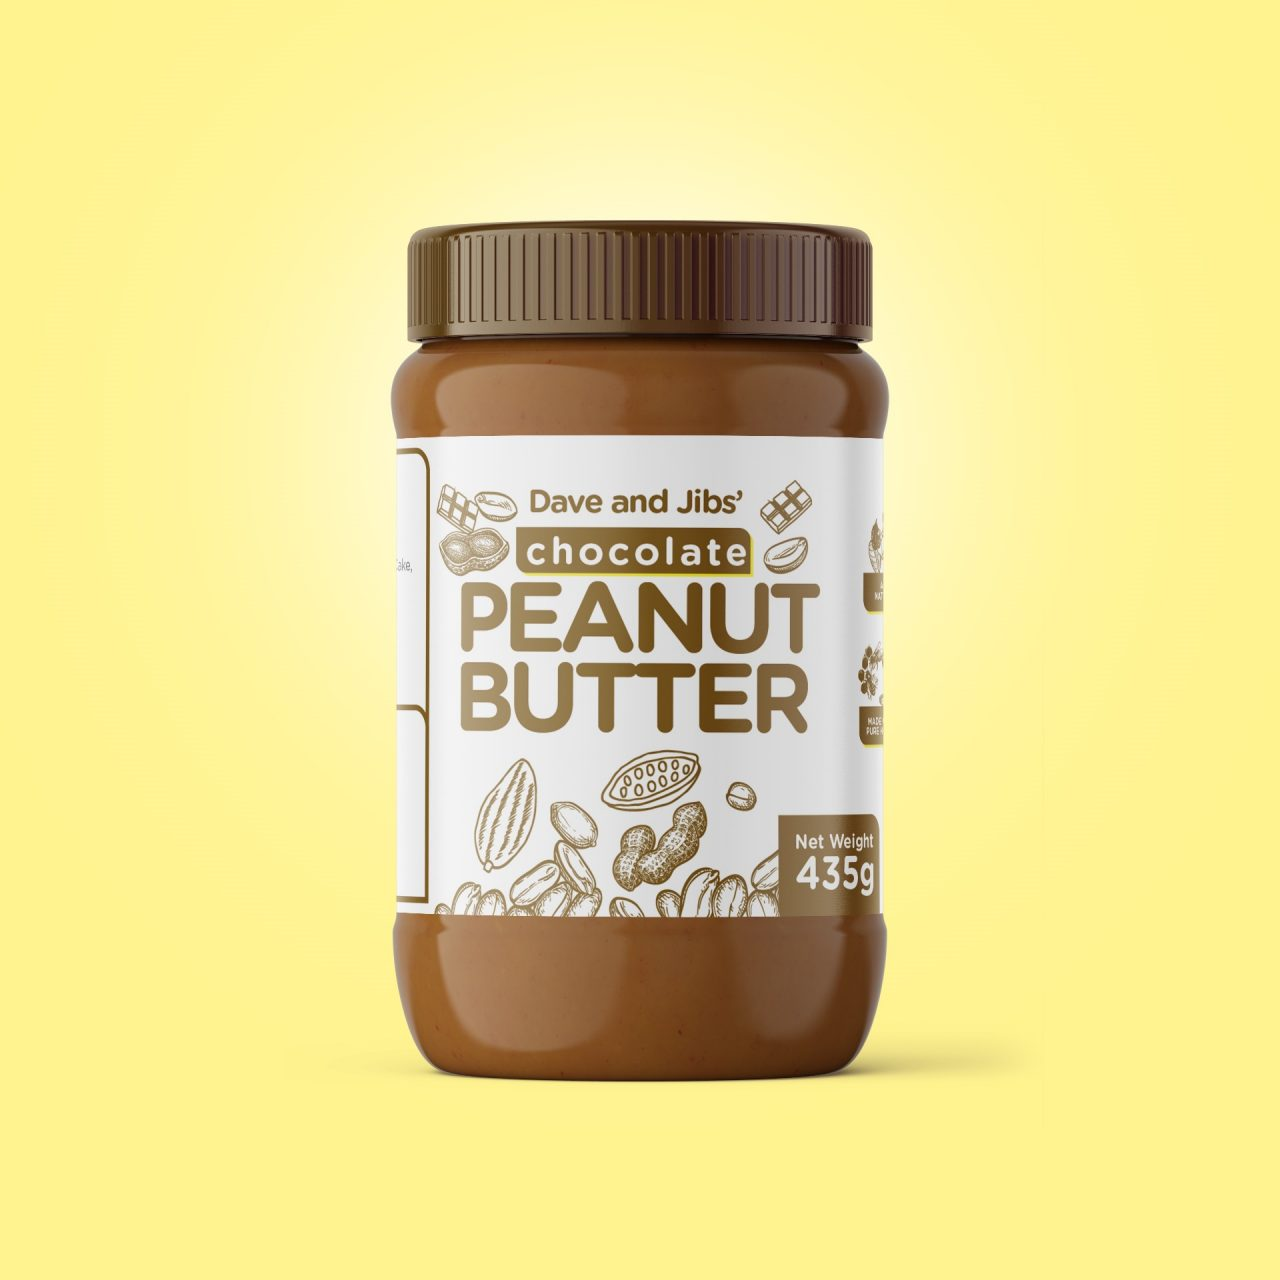 D and J peanut butter Original and chocolate